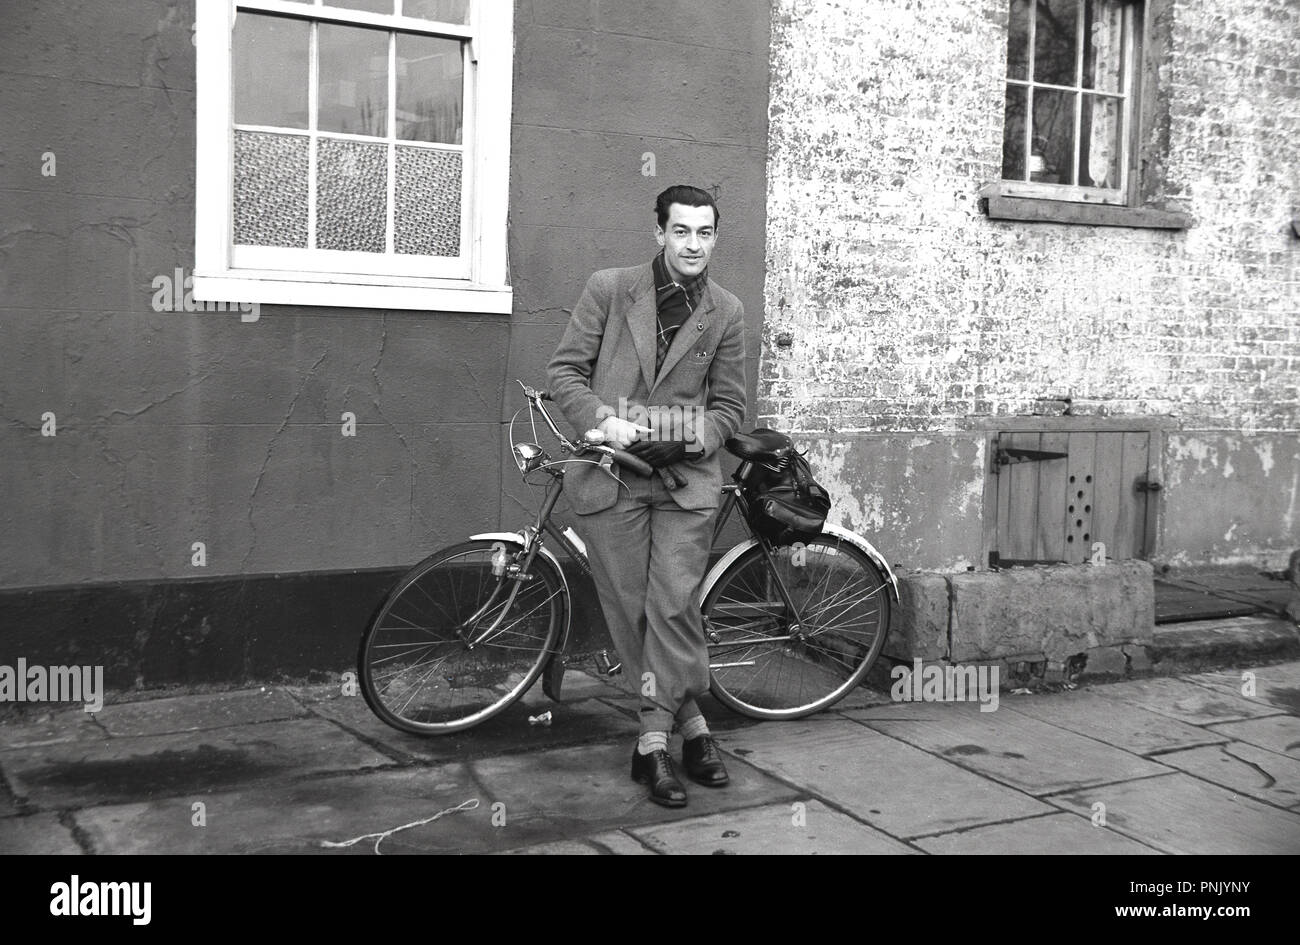 1950s, historical, cycling to work...adult male cyclist in clothing of the era and with bicycle clips, posing for a photo in a street in the city of Bristol, England, UK. Traditional 'city' or urban bicycles such as these were an important means of transport in post-war Britain. - Stock Image